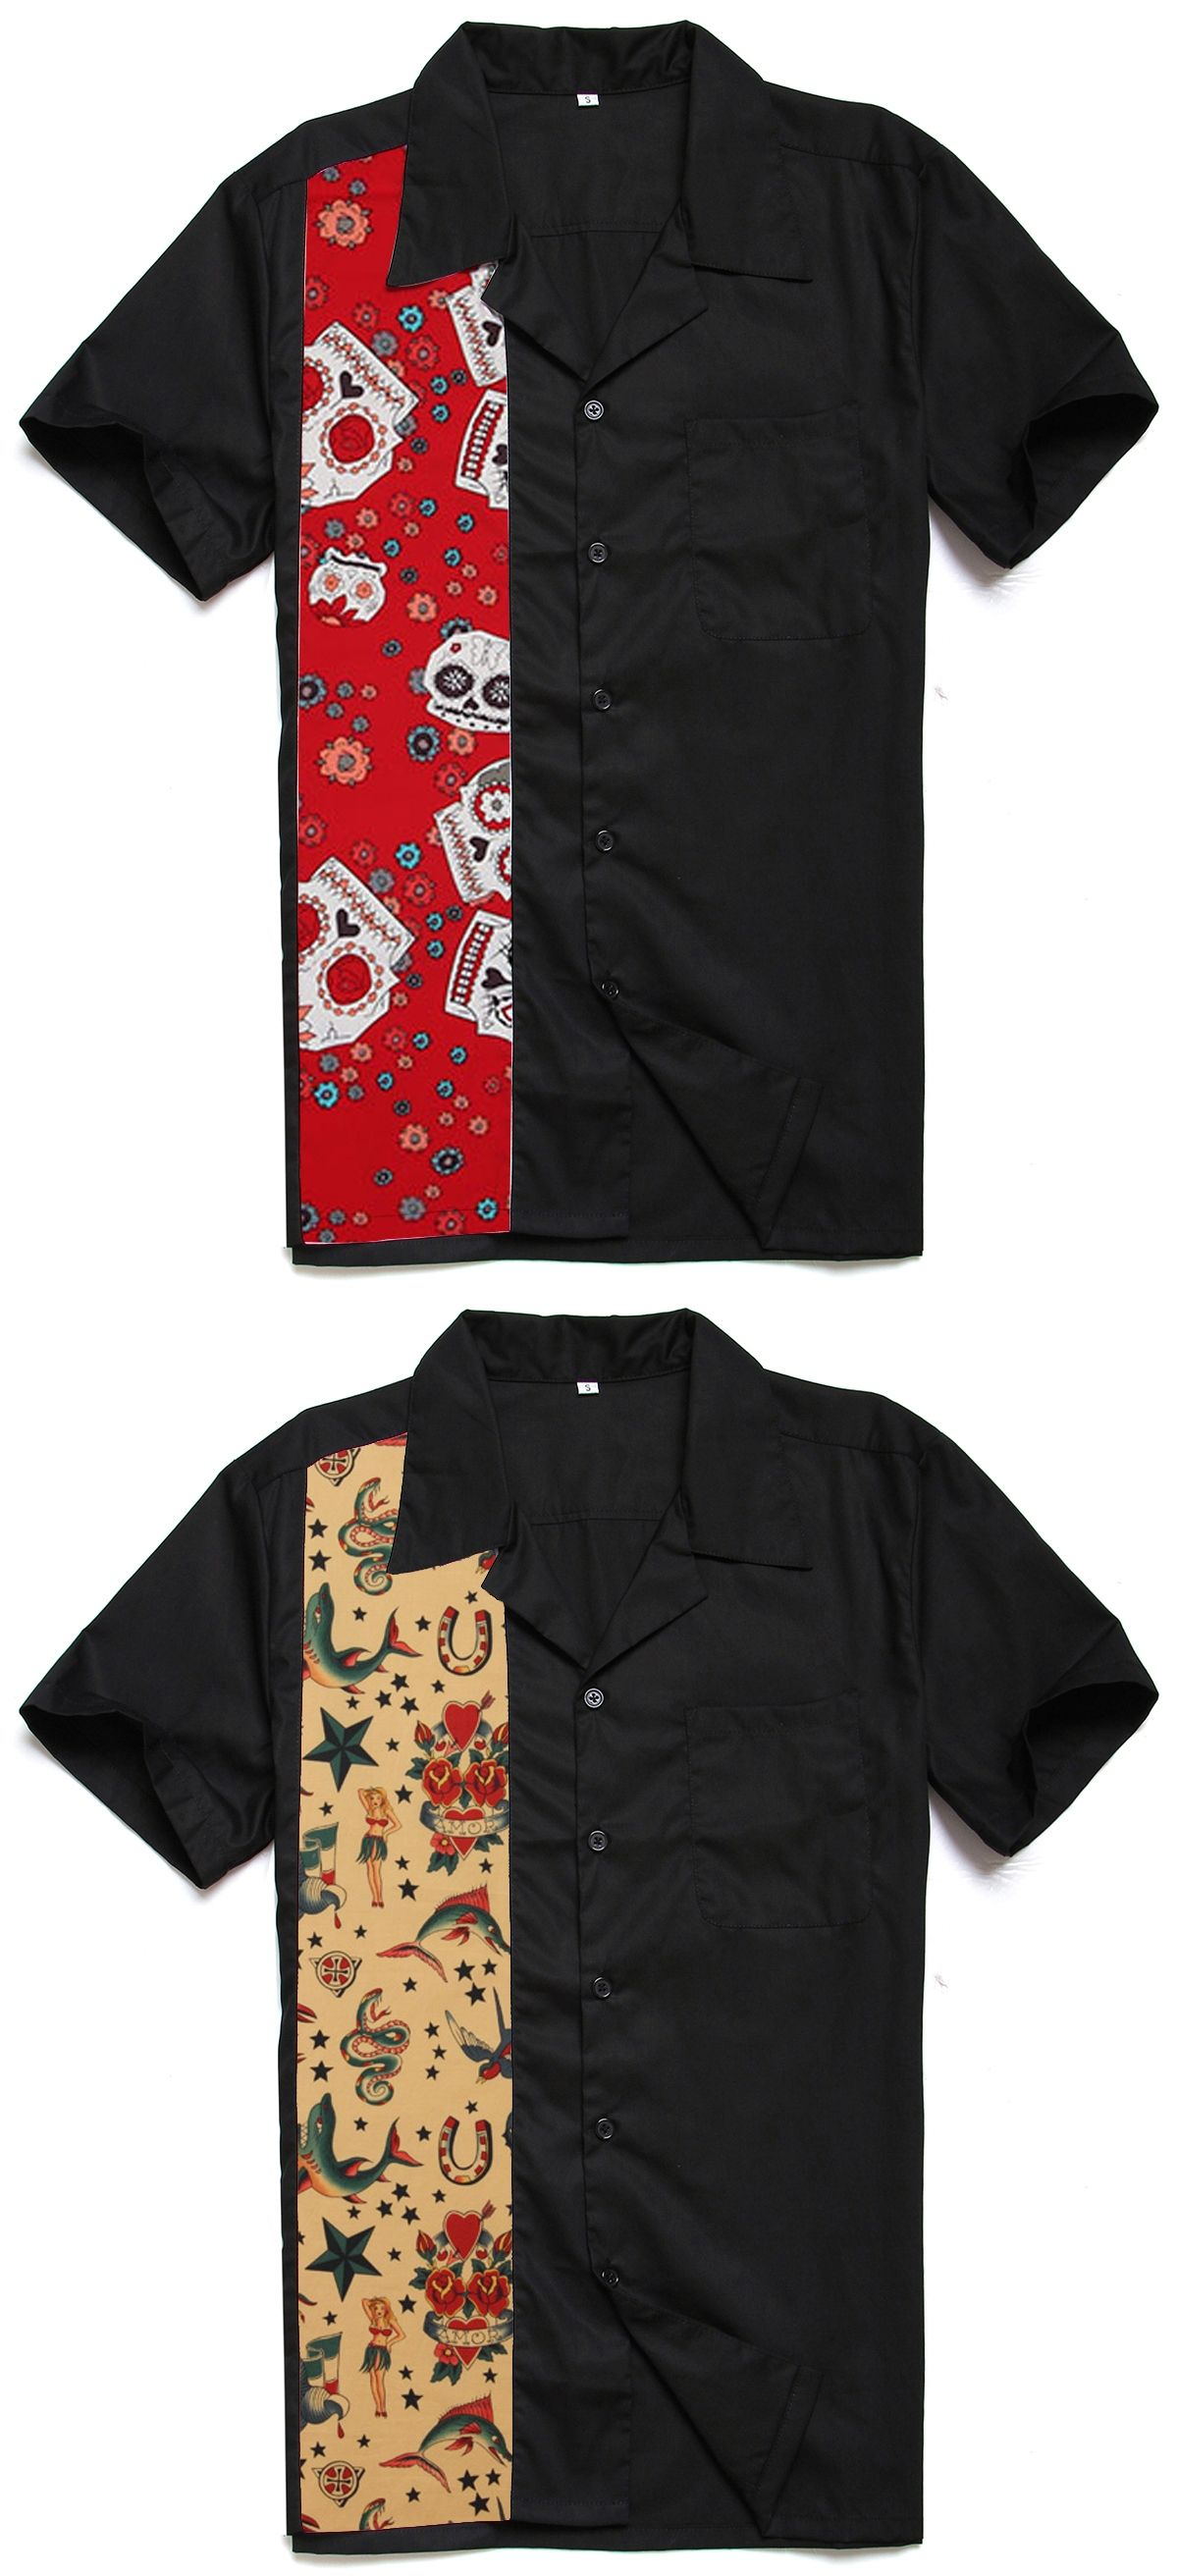 Fashion Casual Novelty Printing Tattoo Male Top Short Sleeves Rockabilly  Hiphop Vintage 40s 50s American Club b71812550fed